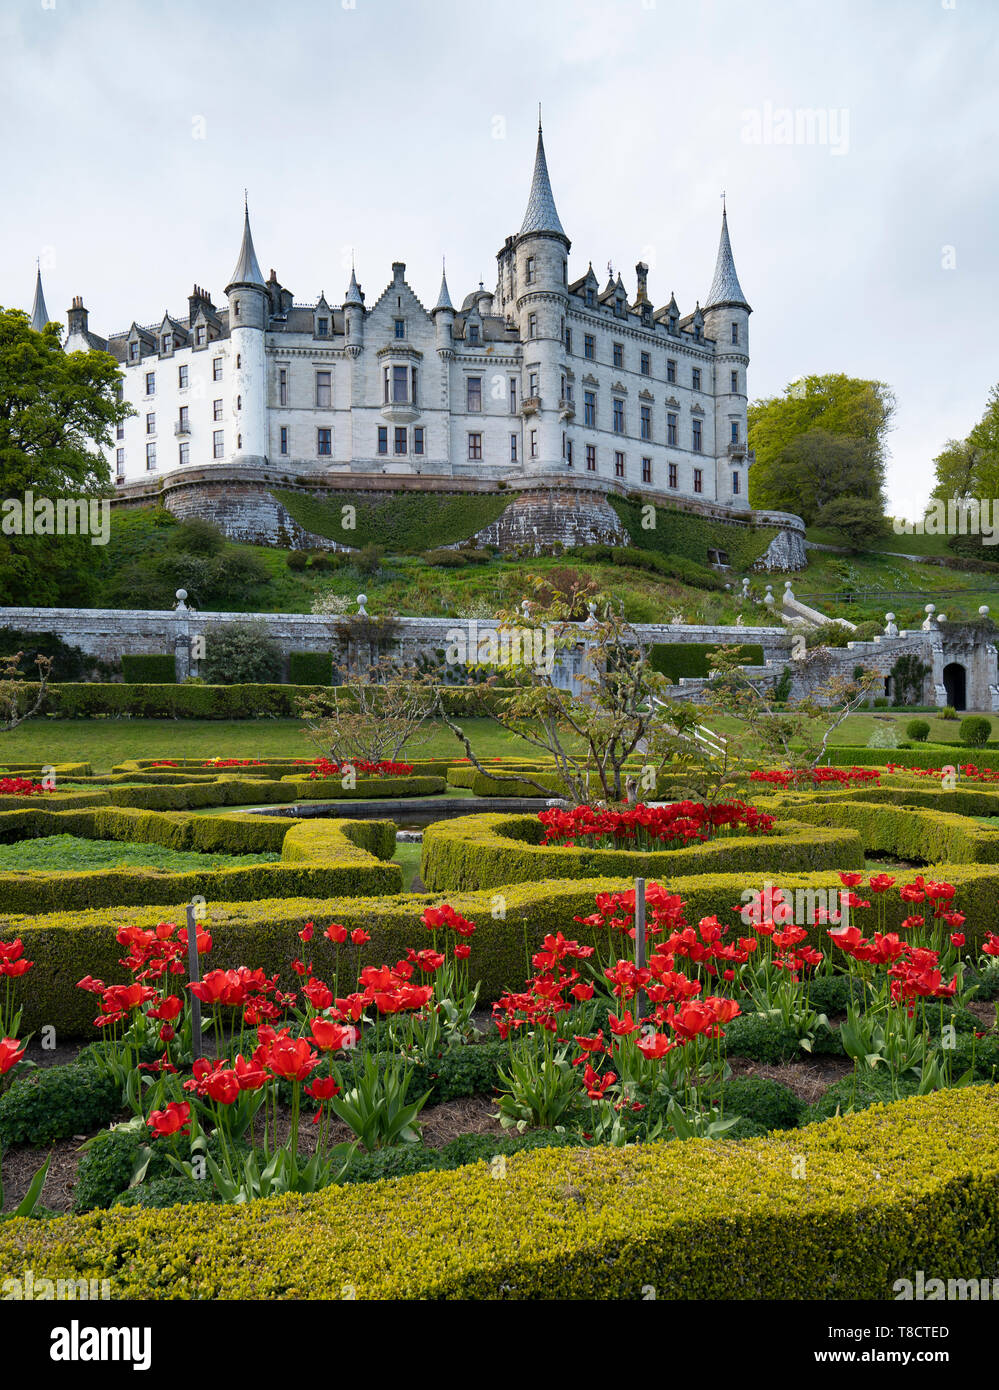 View of Dunrobin Castle and gardens on the North Coast 500 scenic driving route in northern Scotland, UK - Stock Image